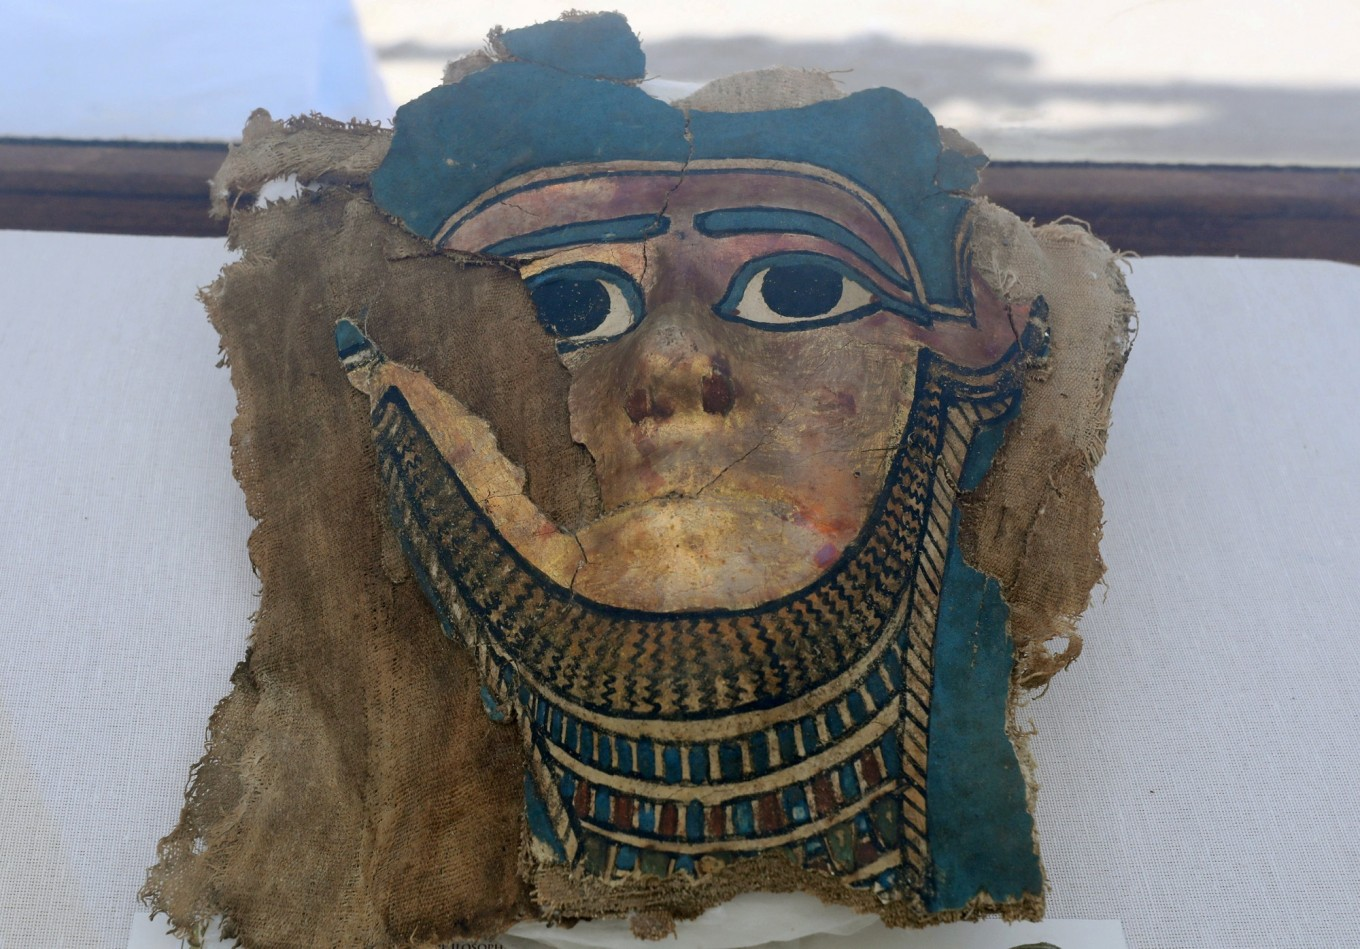 Egypt uncovers mummy burial site near Great Pyramids